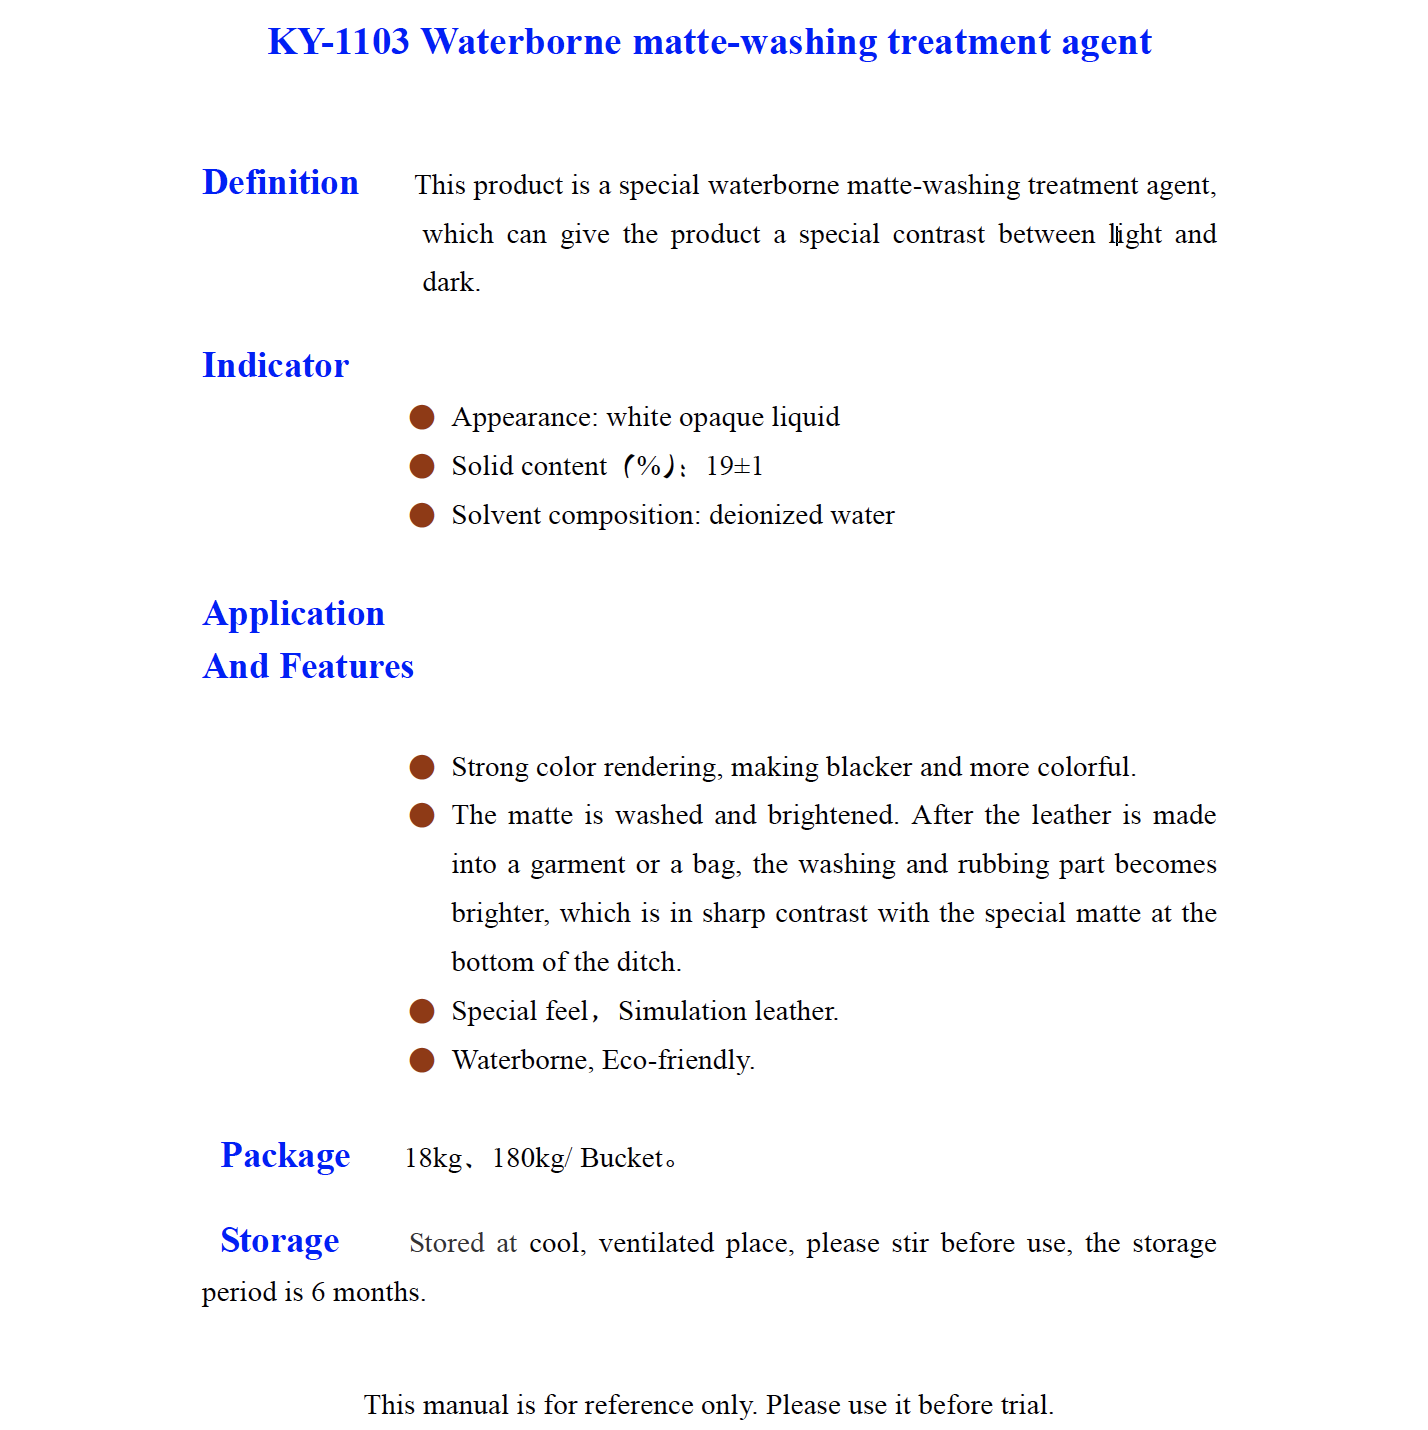 K Y 1103 Waterborne matte washing treatment agent